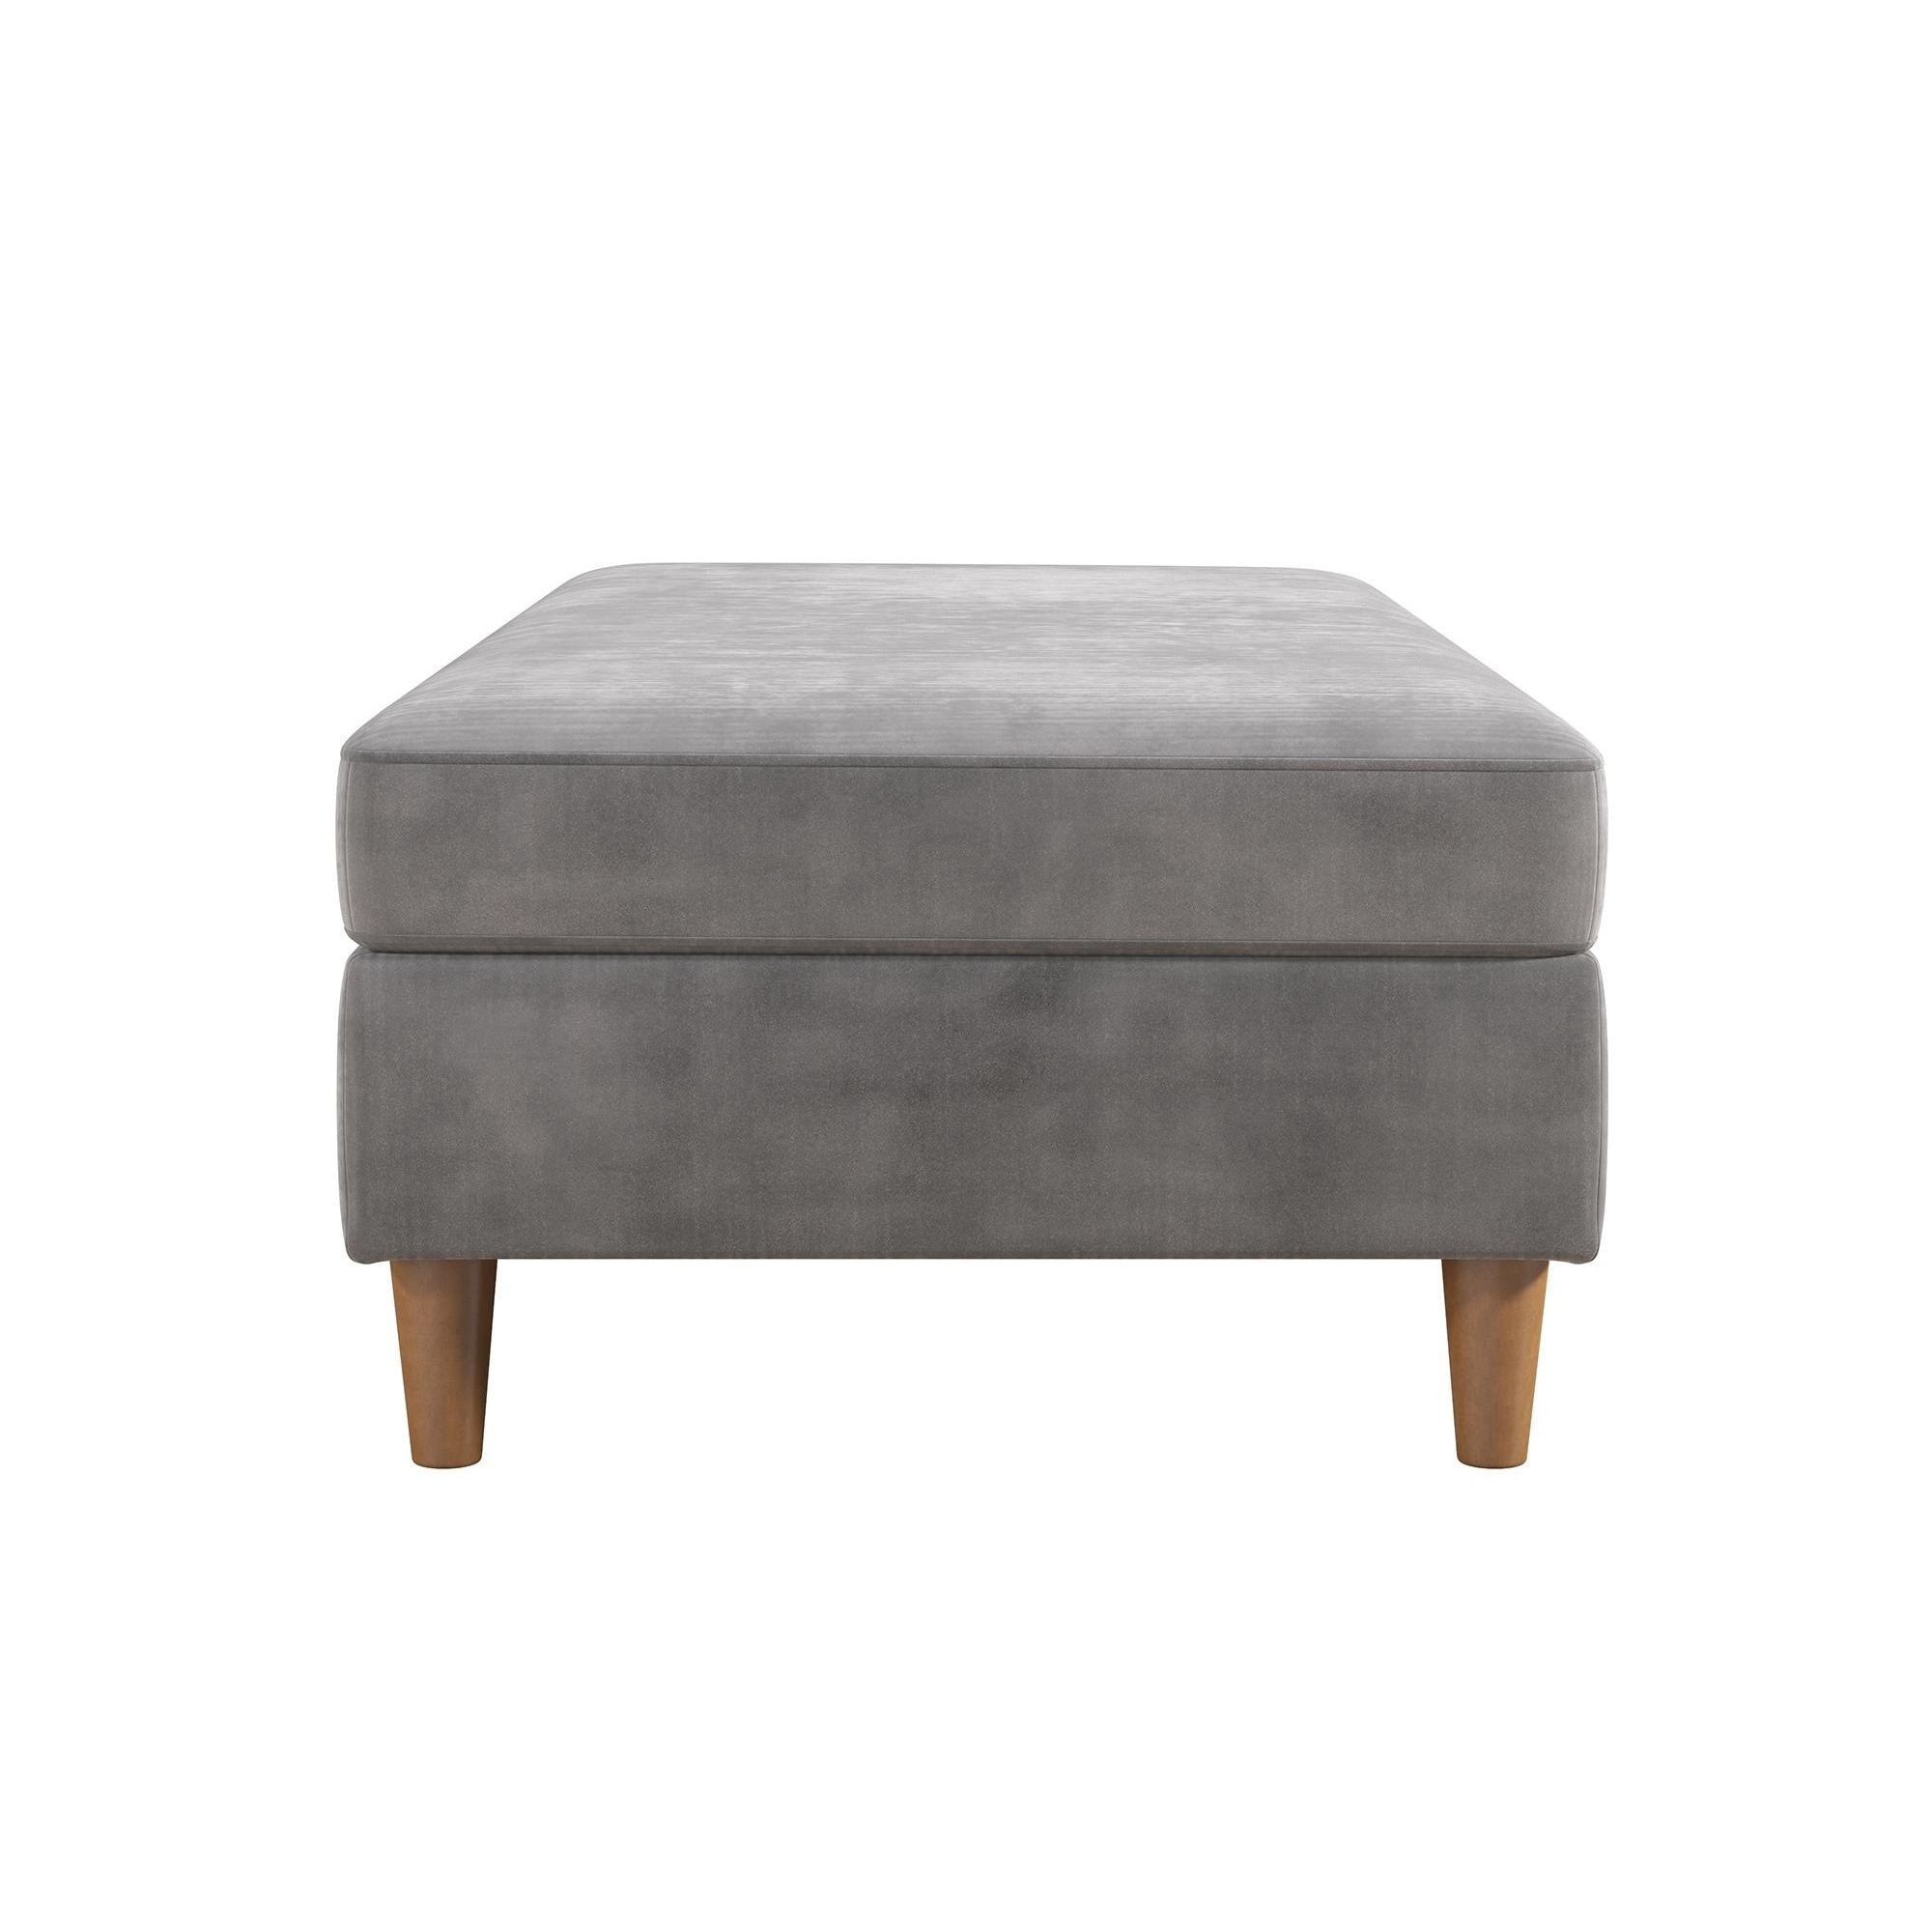 modern tait ottomans blu cleon previous oc ochre dot fabric with futon otooto ottoman image futons